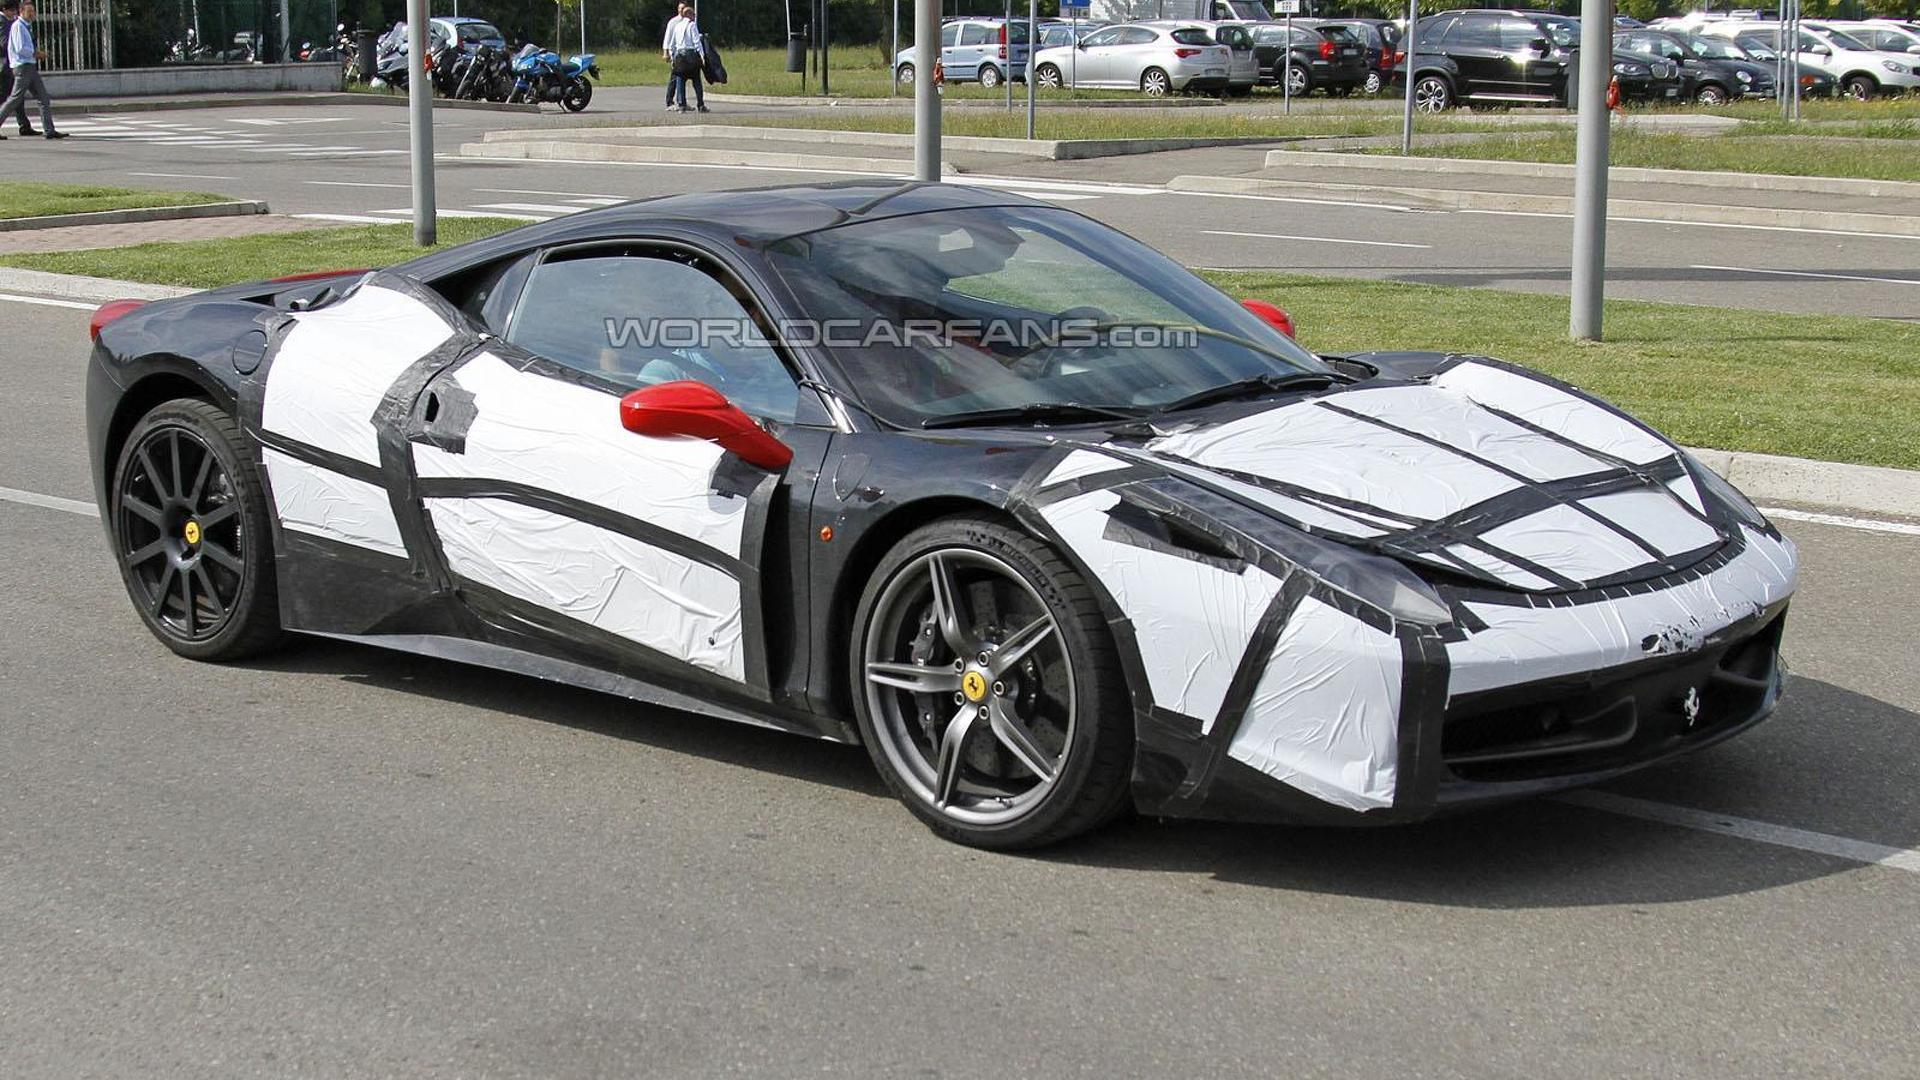 Ferrari 458 M spied for the first time